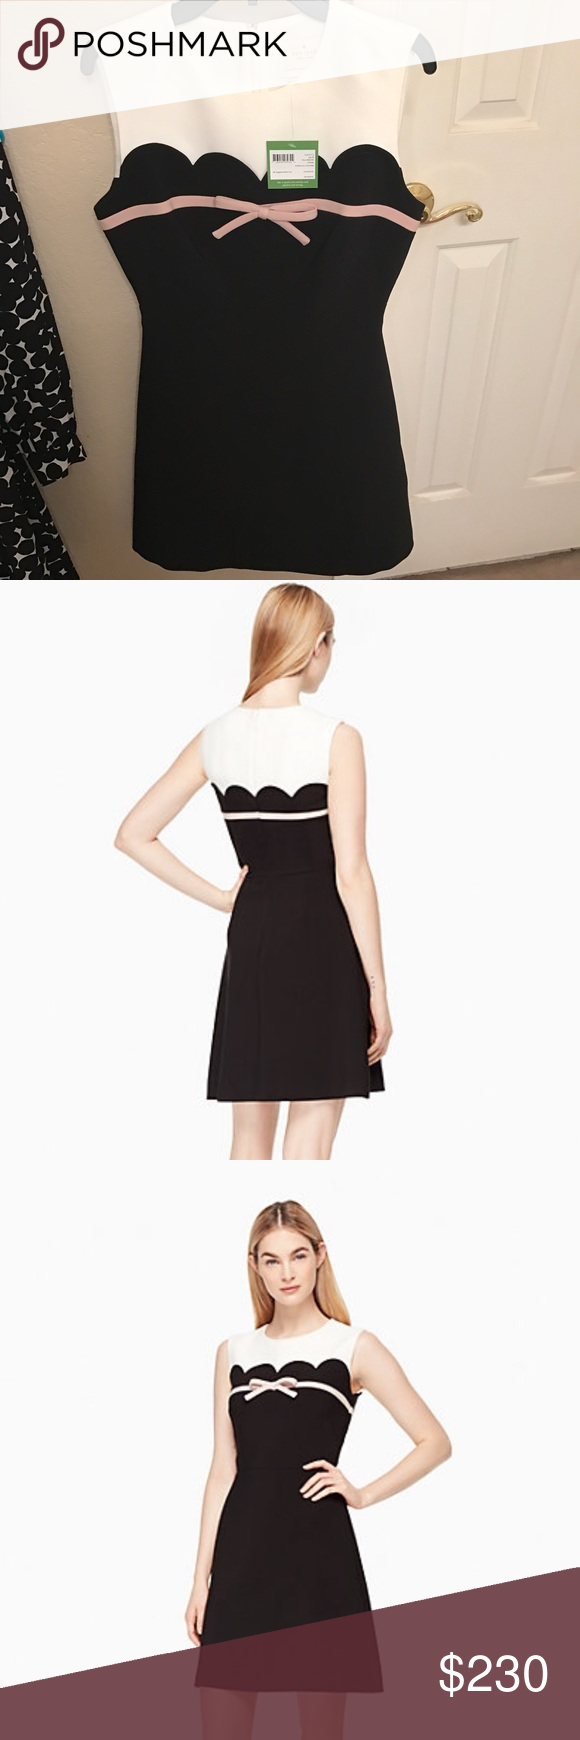 Kate spade scallop bow A-line dress Brand new with tags! On the website for $328 plus tax. New worn and brand new for 2017. kate spade Dresses